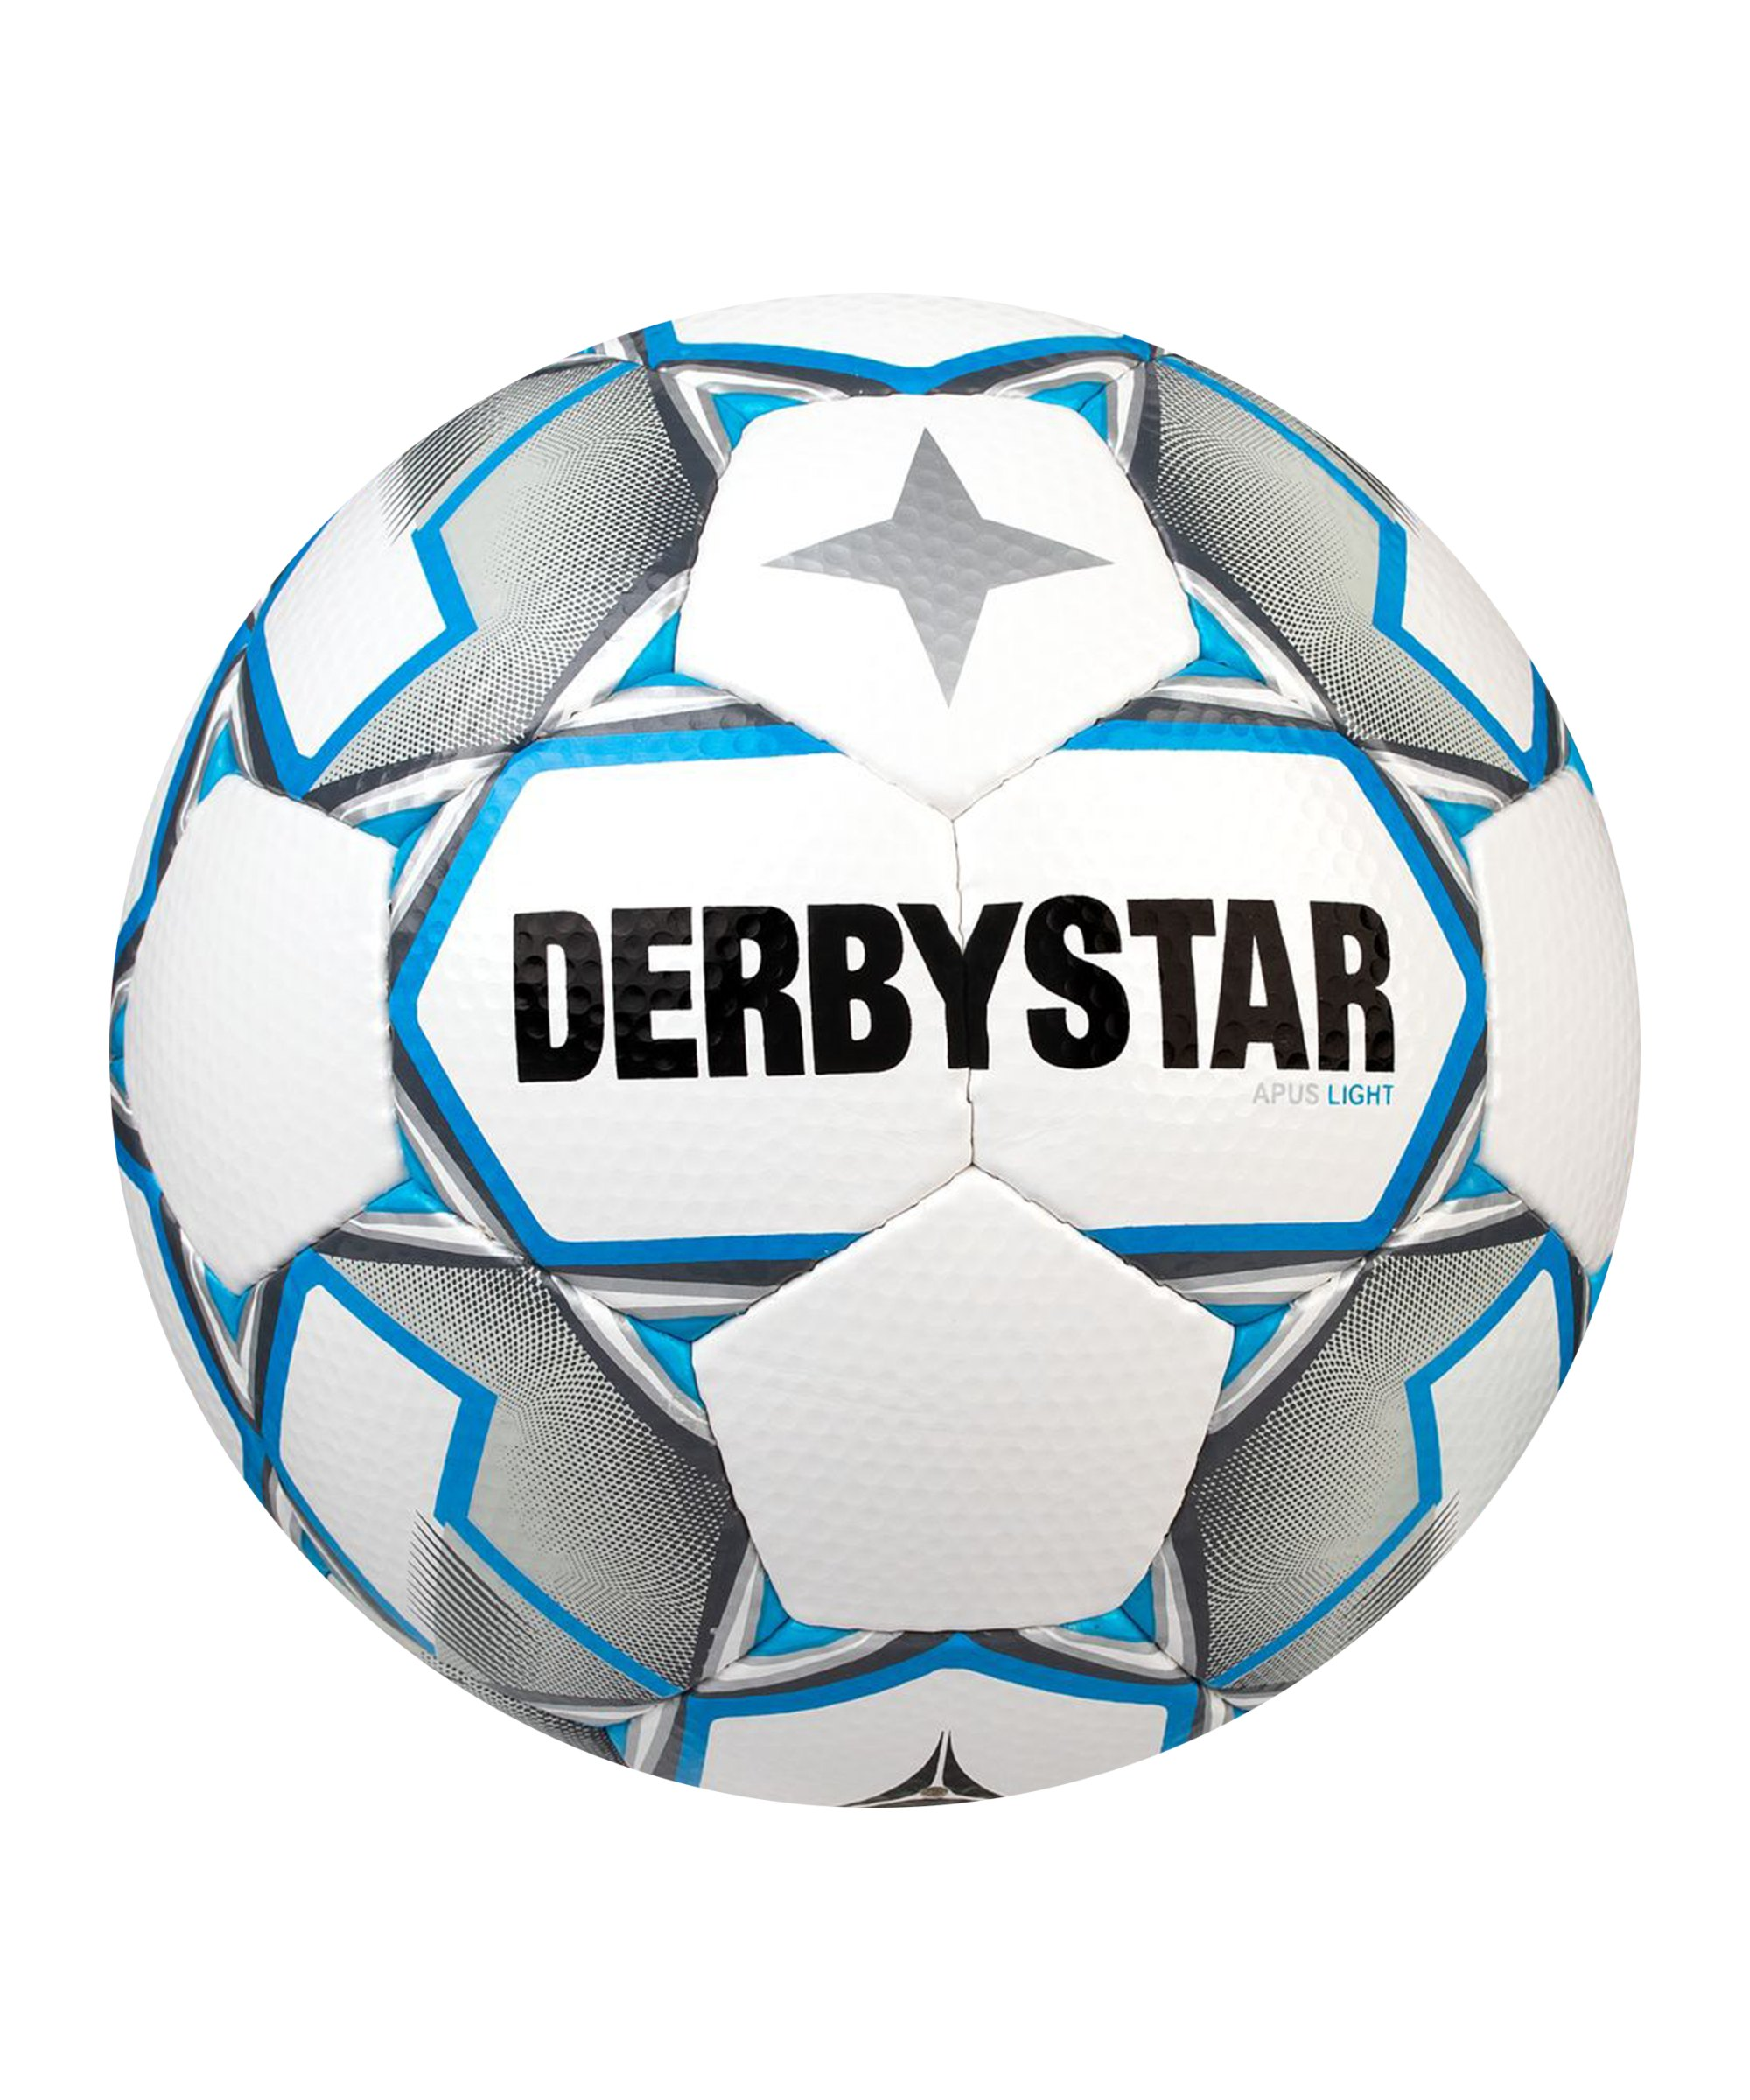 Derbystar Apus Light v20 Trainingsball F096 - weiss